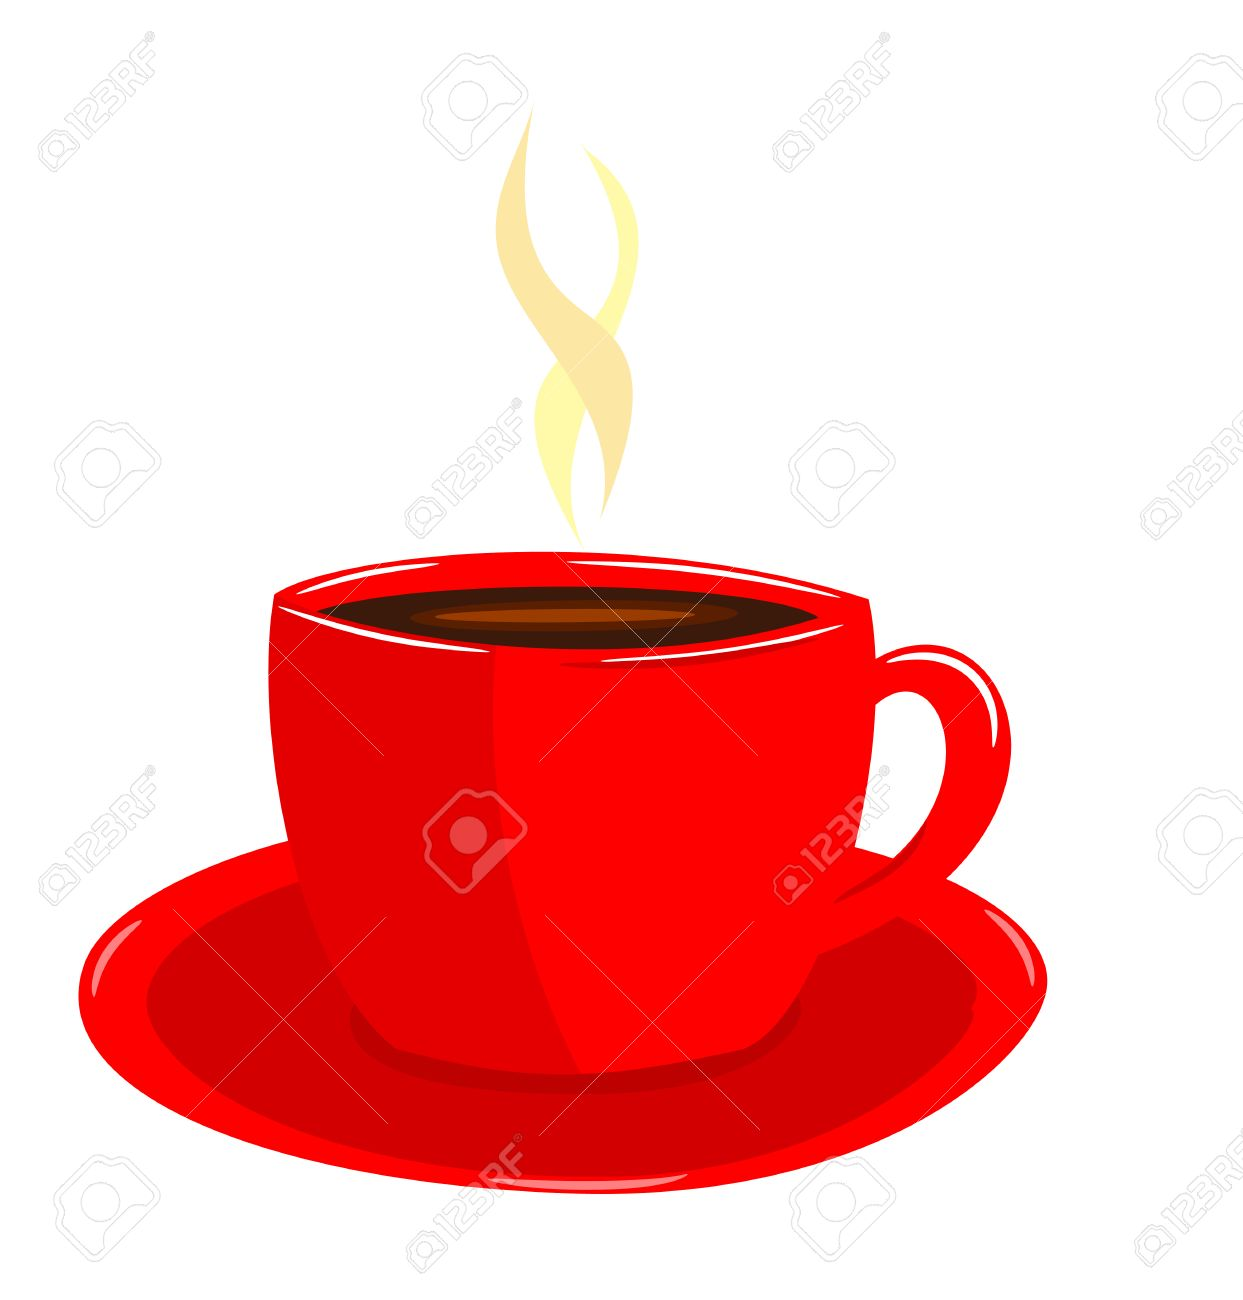 Steaming coffee in red cup illustration Stock Vector - 8069067